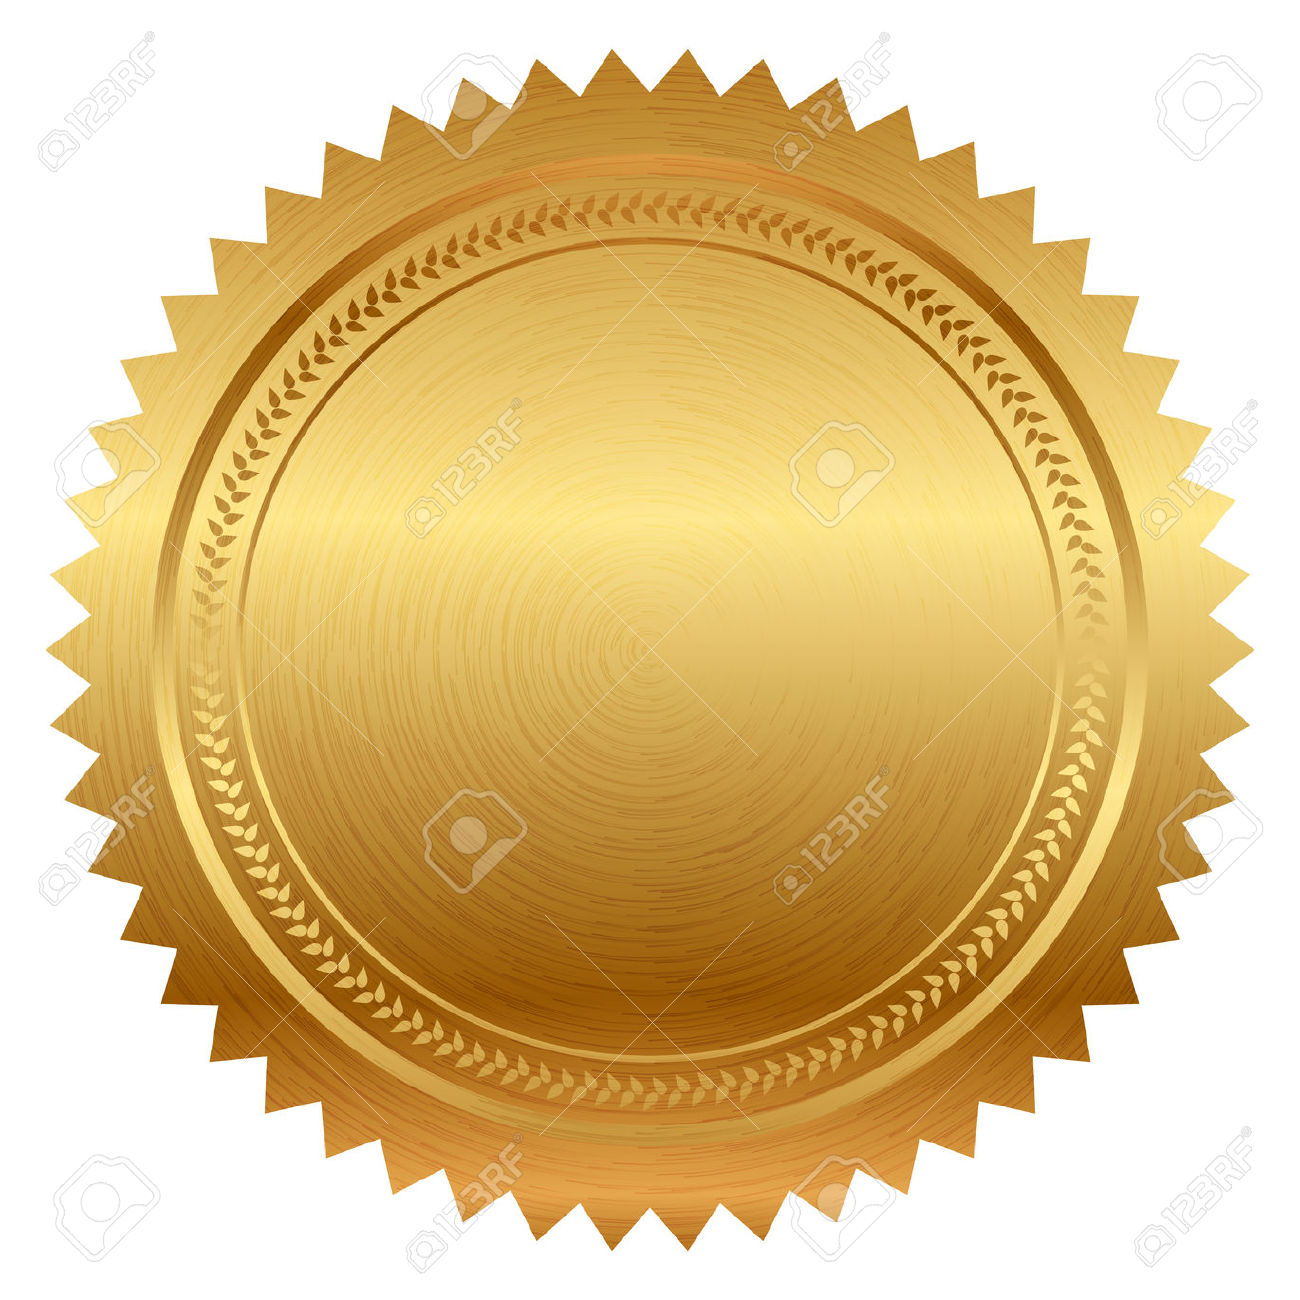 seal of excellence clipart 20 free cliparts